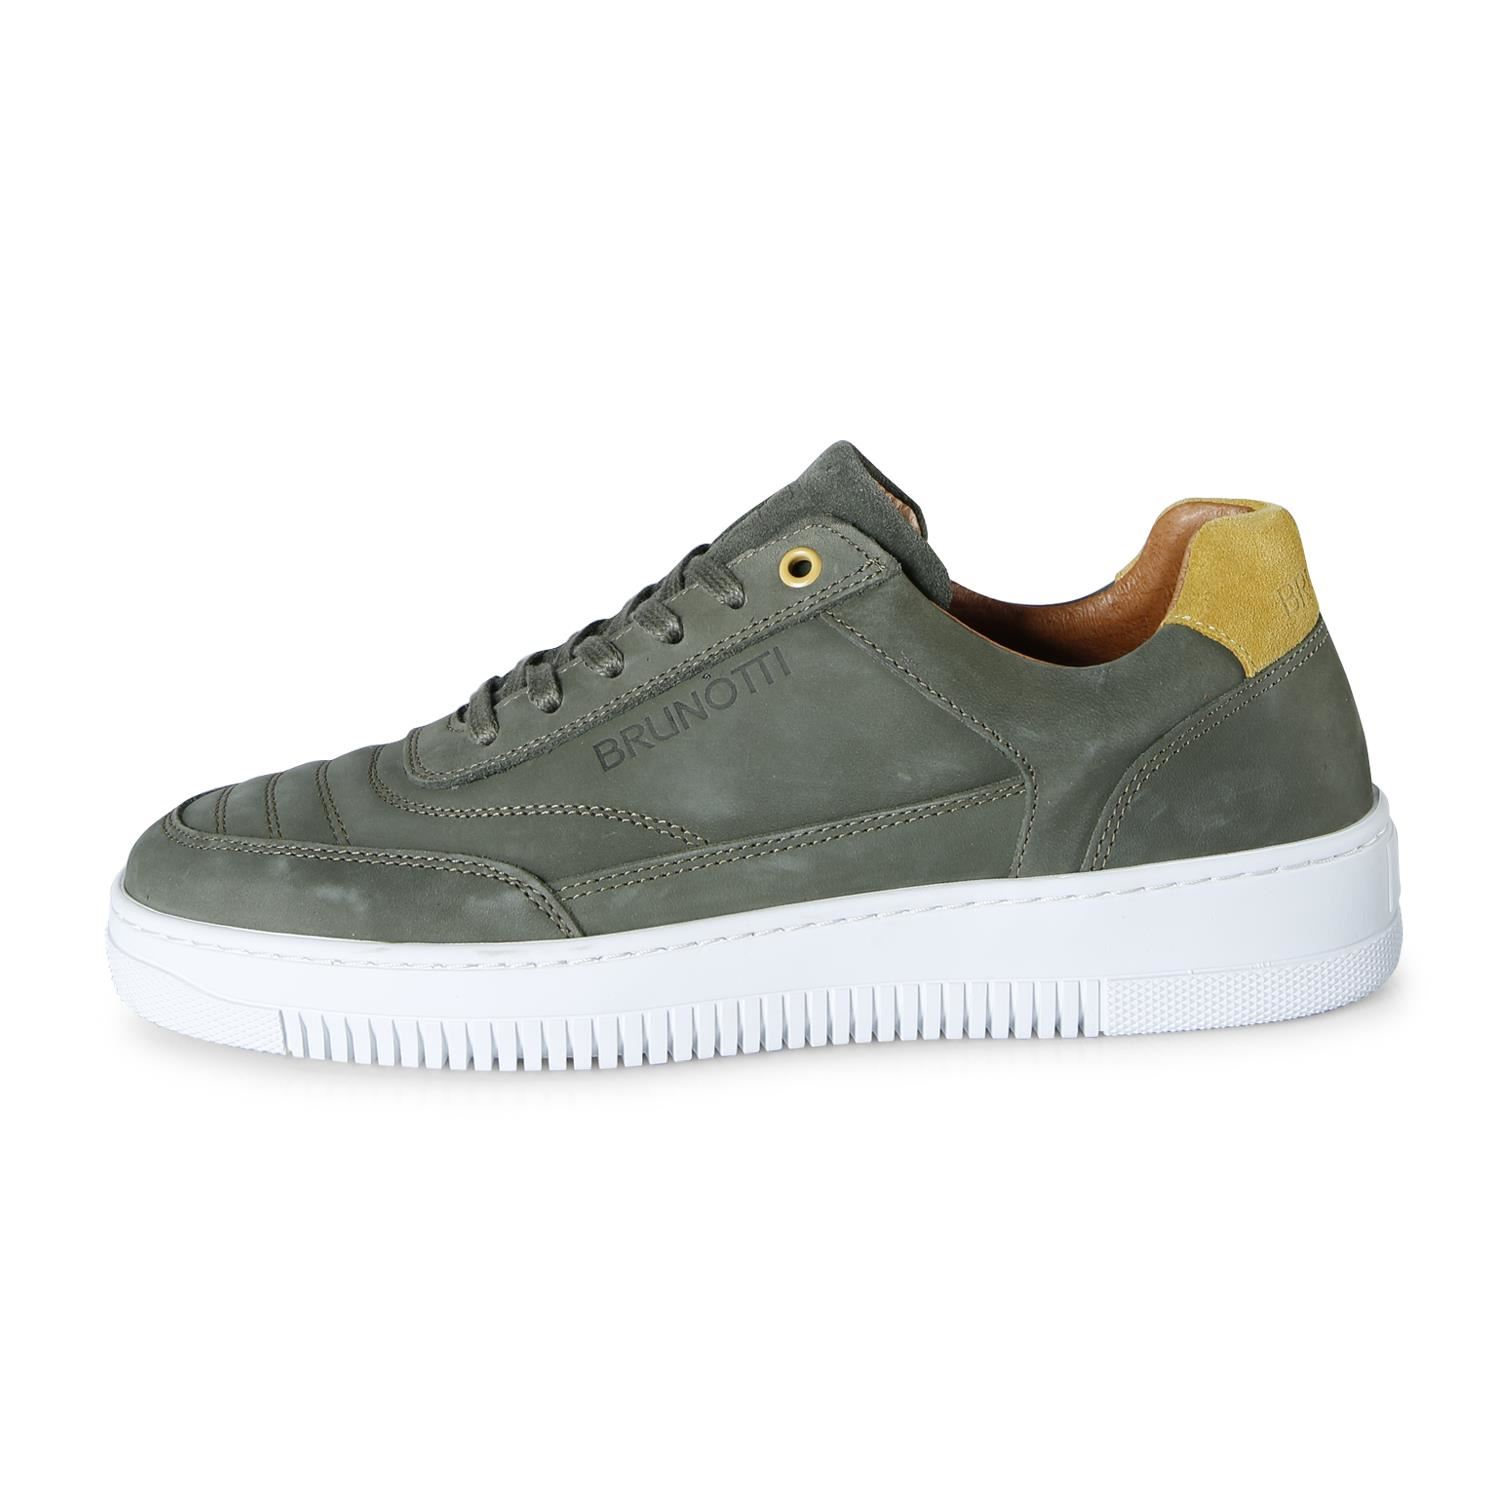 Brunotti Arugam  (green) - men shoes - Brunotti online shop